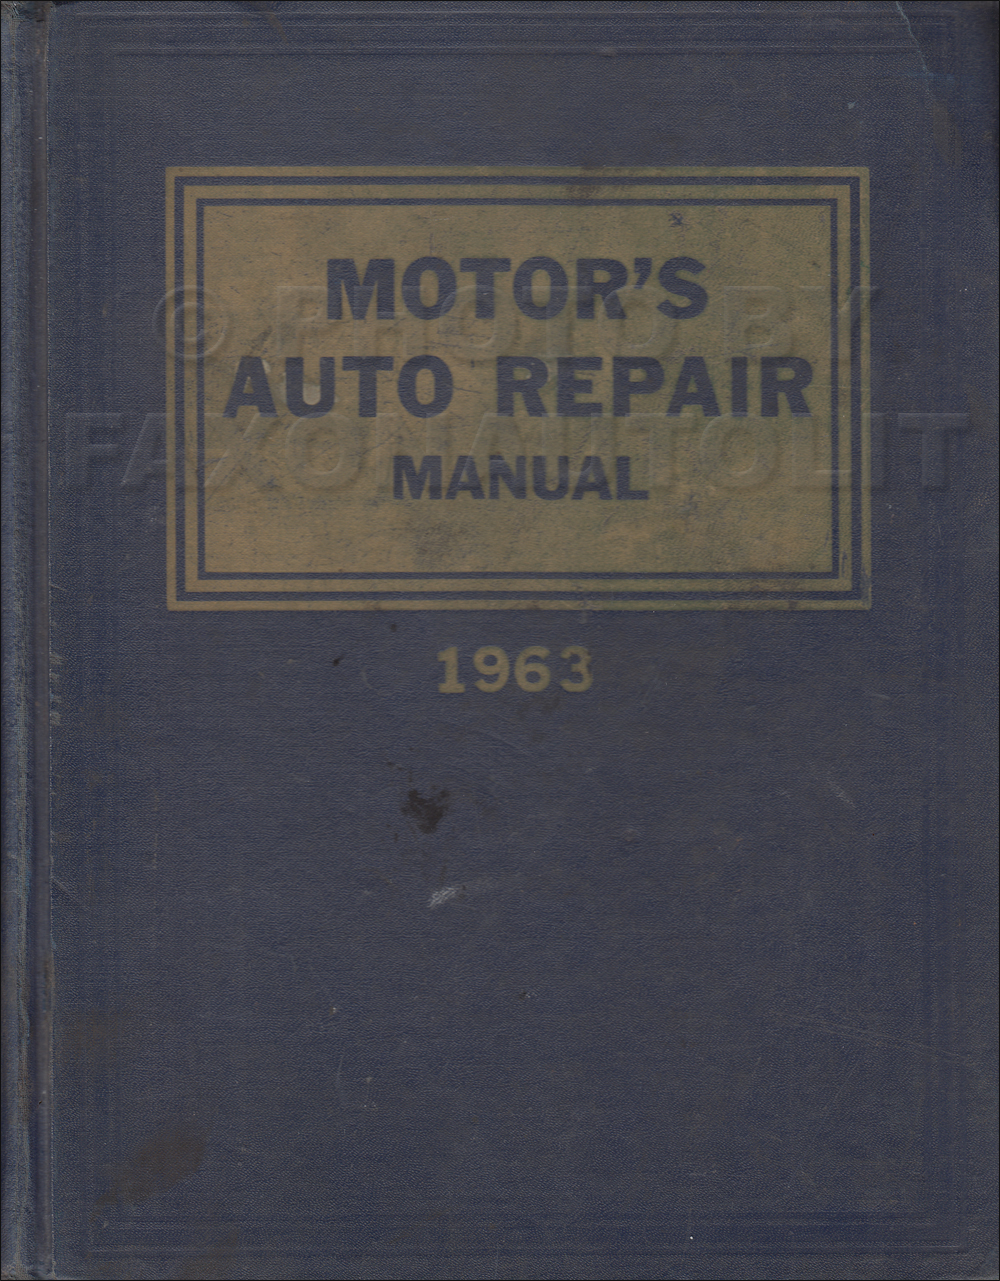 1955-1963 Motors 26th Edition Car Repair Shop Manual